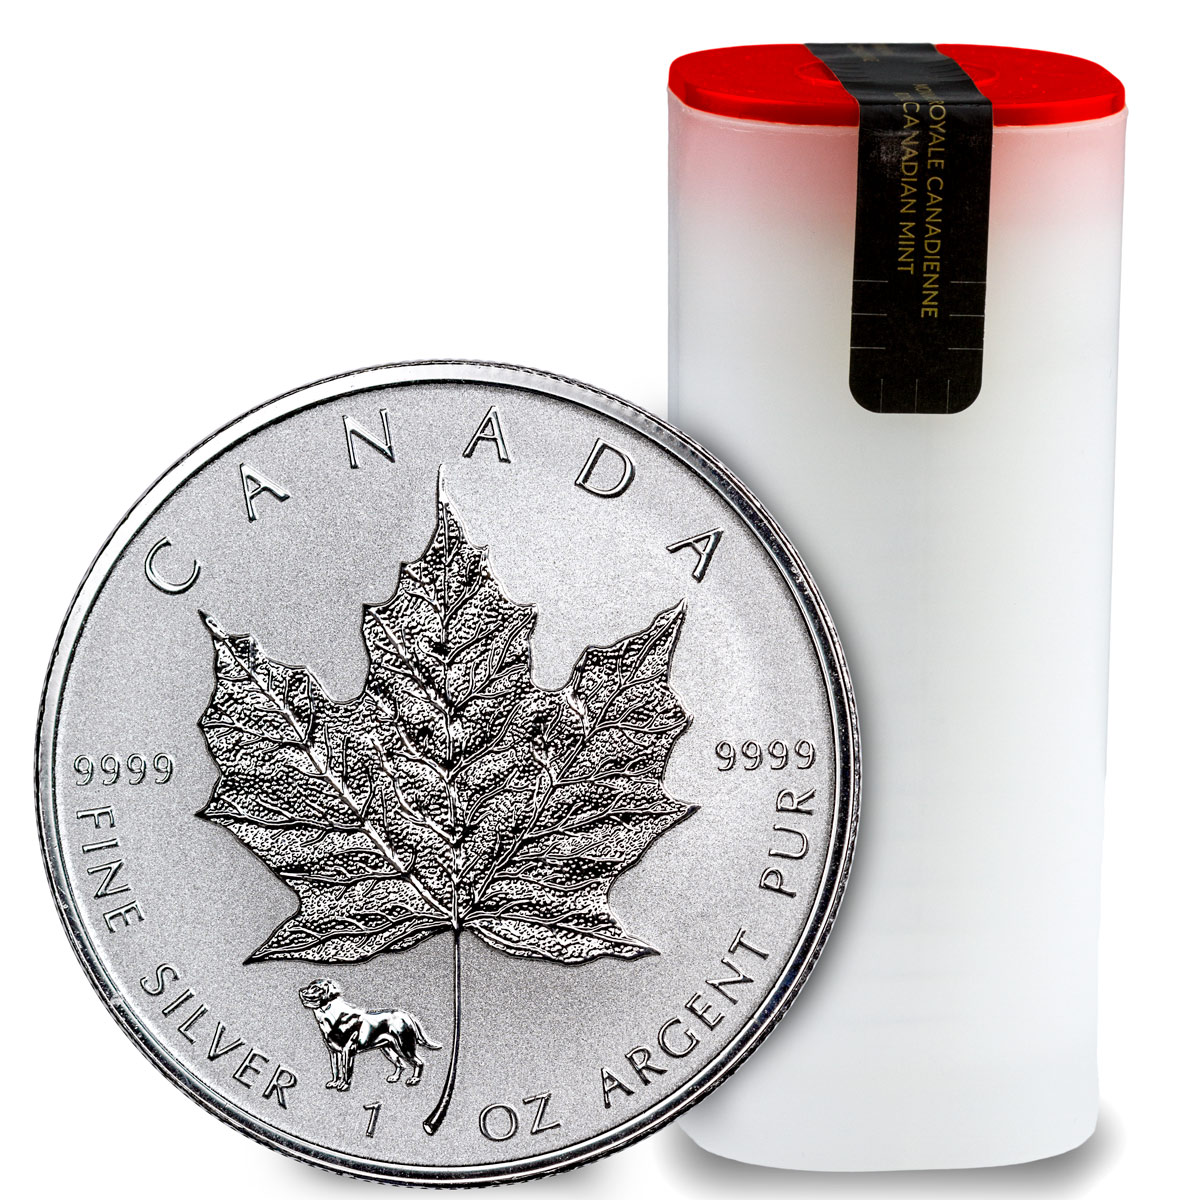 Roll of 25 - 2018 Canada 1 oz Silver Maple Leaf - Dog Privy Reverse Proof $5 Coins GEM Proof